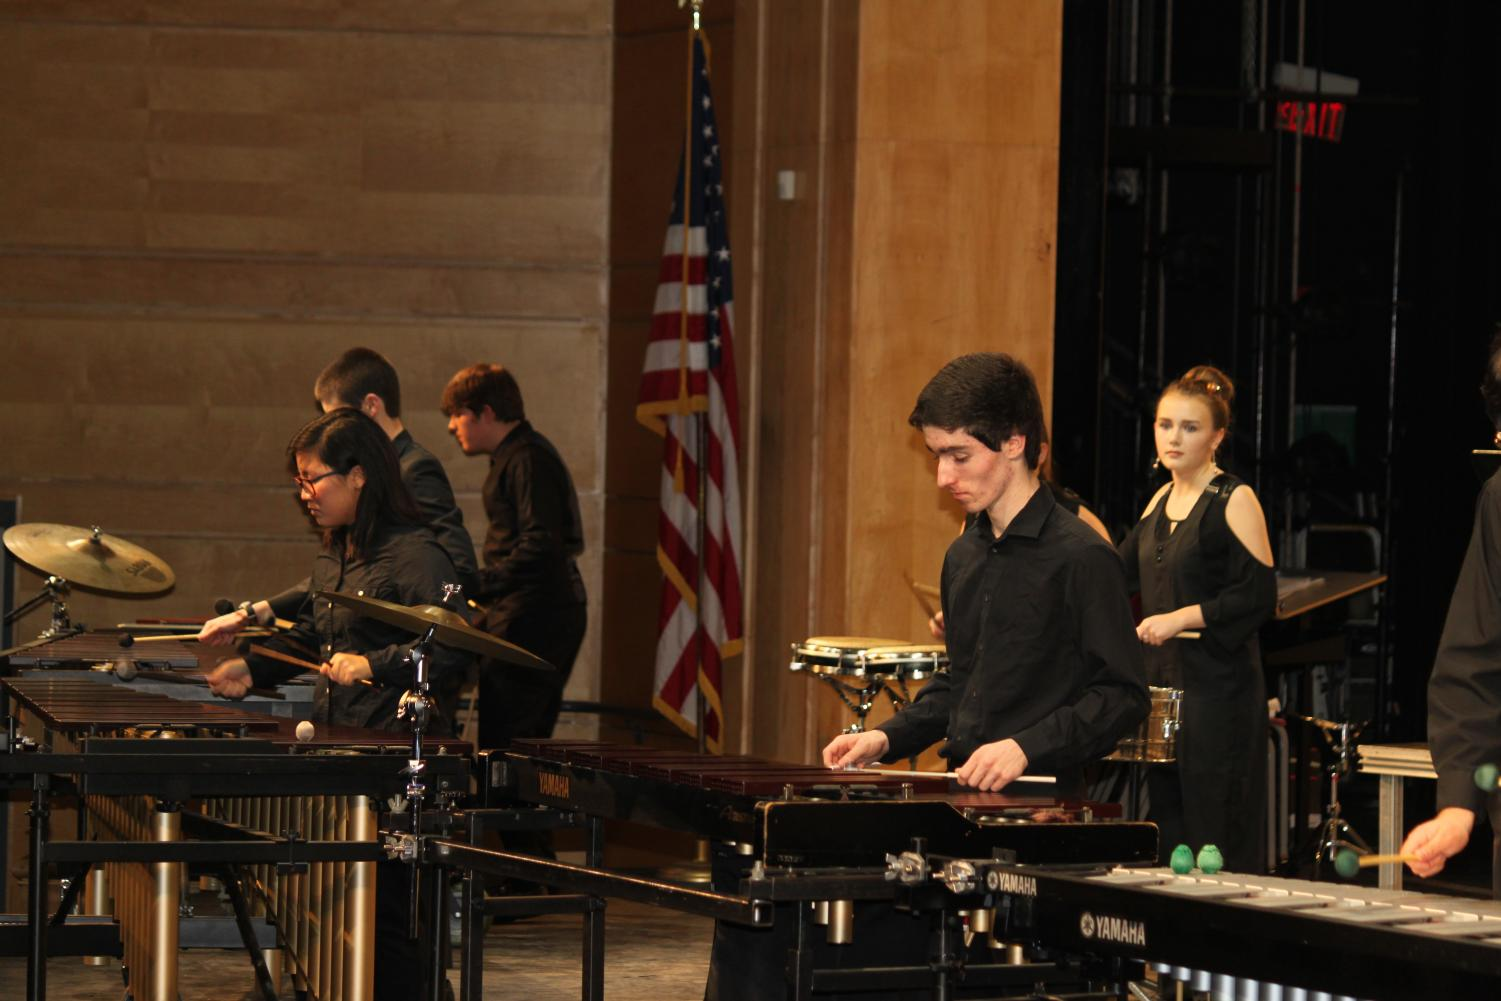 Juniors+Julianne+Lee%2C+Peter+Brown%2C+and+Kathryne+Lovell+of+the+Percussion+Ensemble+play+%27C.C.+Conga%27+by+Thomas+P.+Hannum.